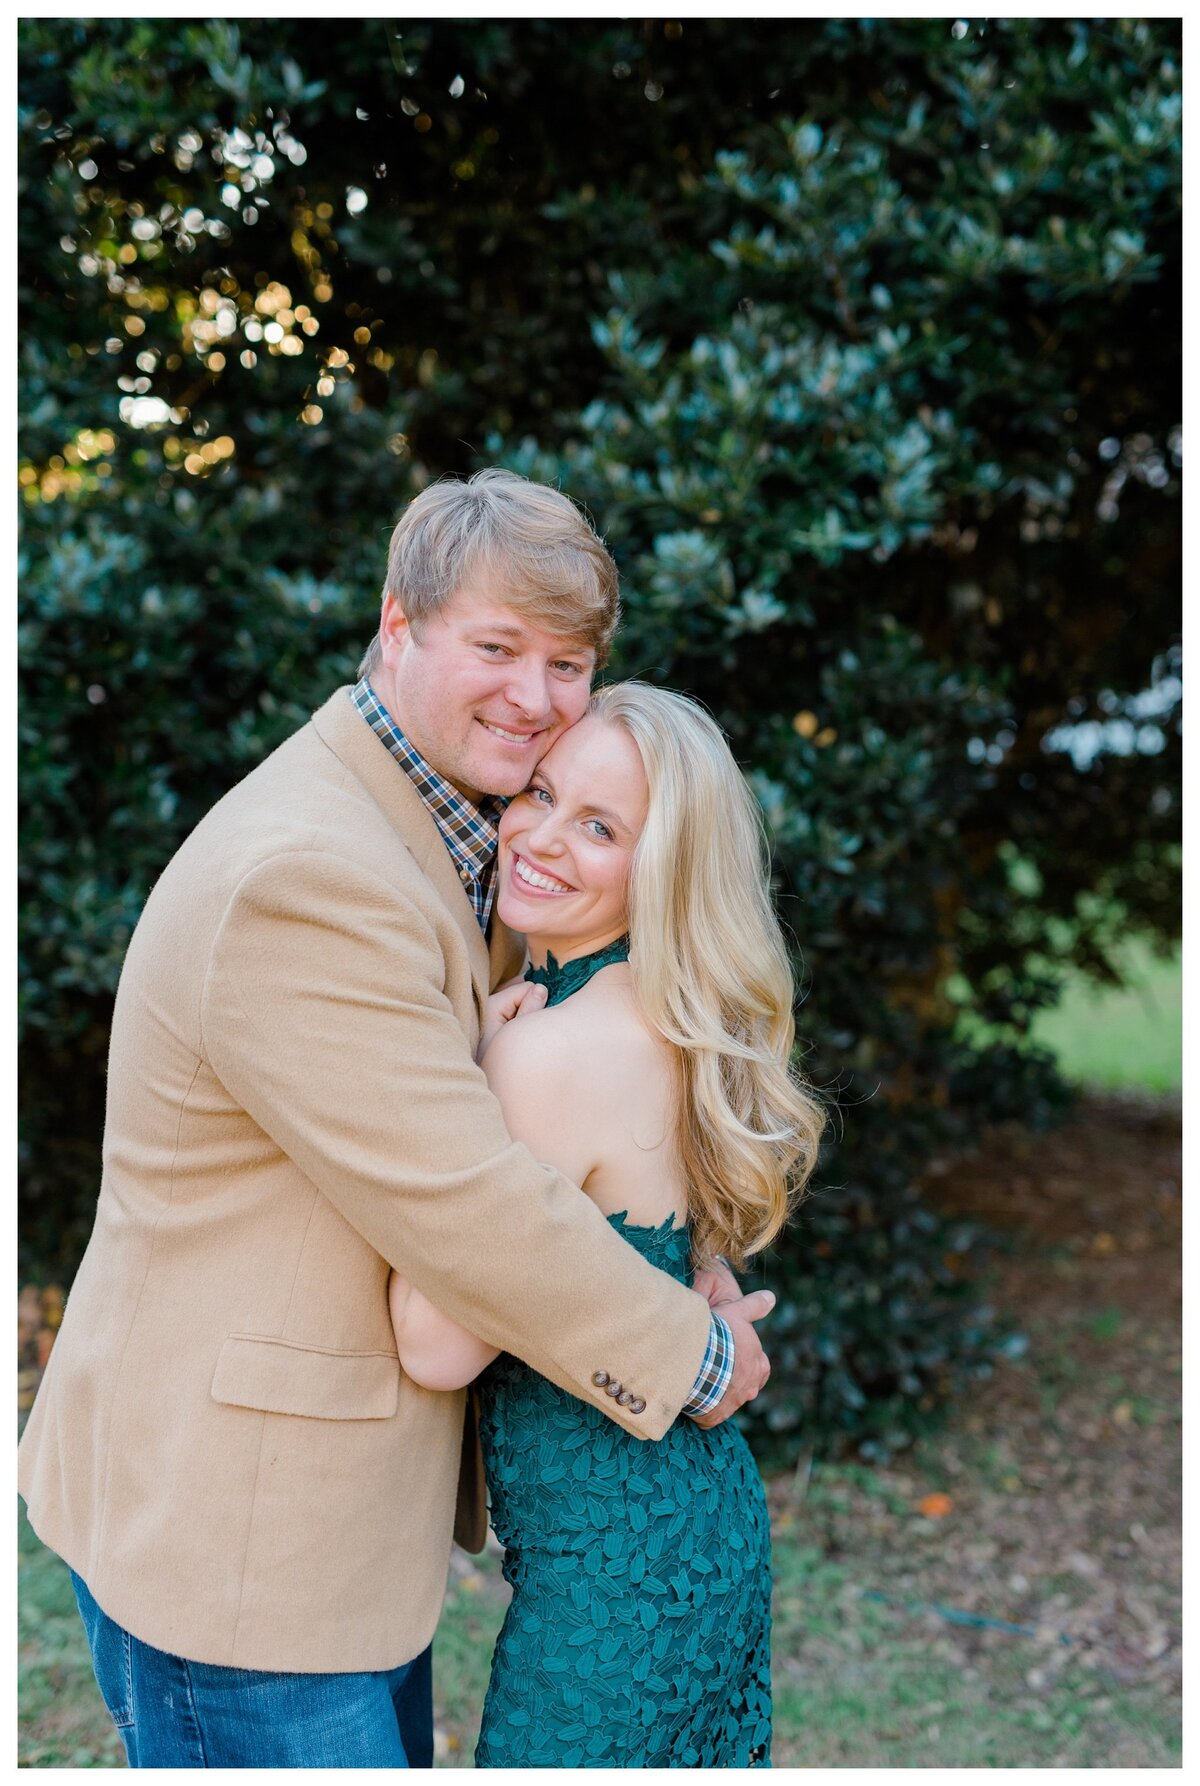 canady-engagements-atlanta-wedding-photographer-27